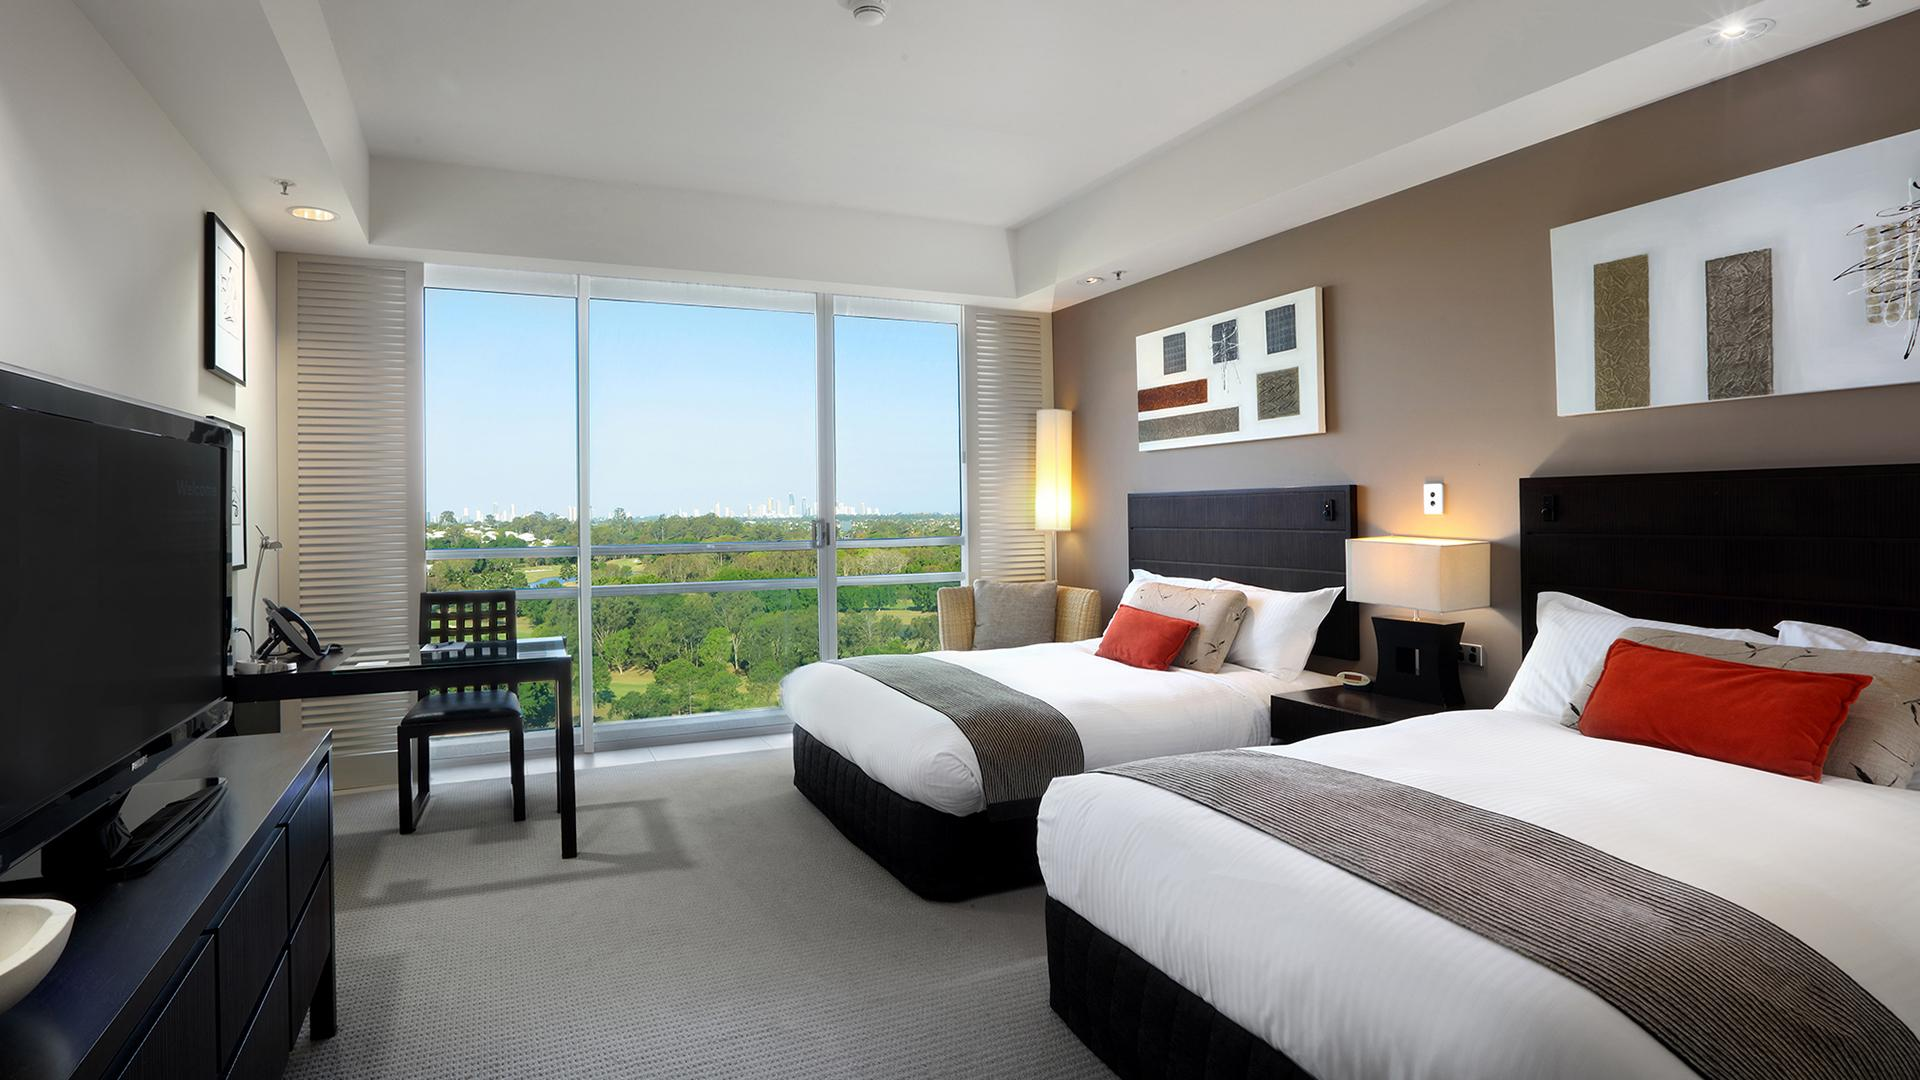 Superior Twin Room image 1 at RACV Royal Pines Resort by City of Gold Coast, Queensland, Australia